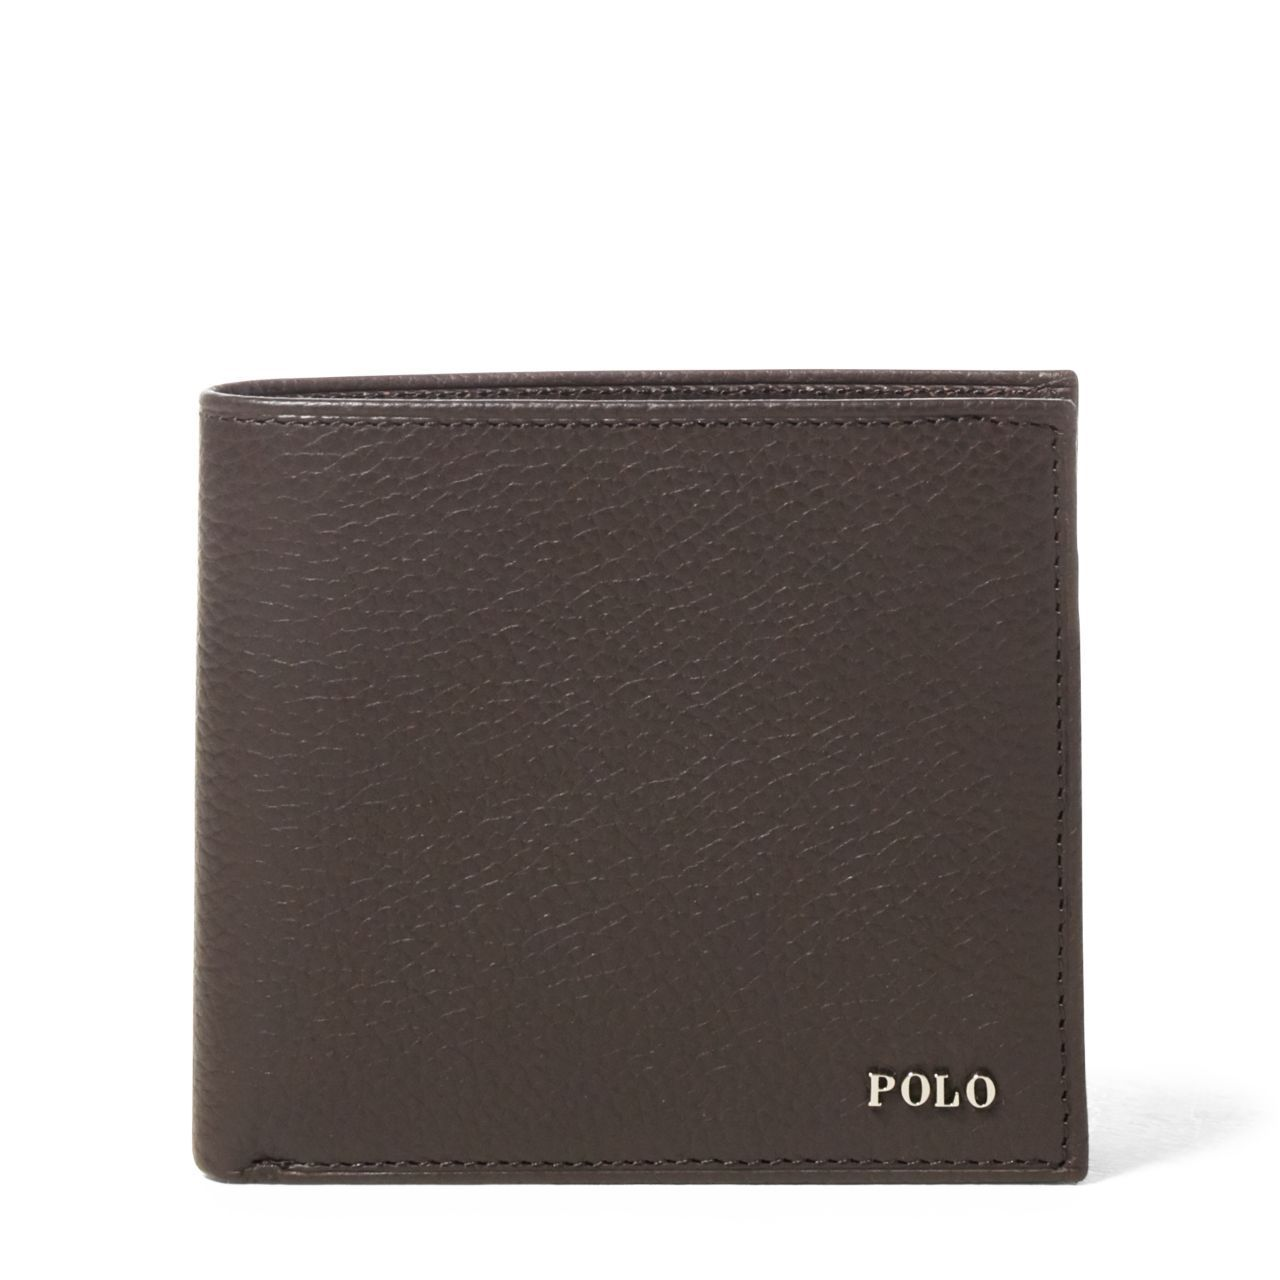 ◎送料込み◎Metal-Plaque Leather Billfold